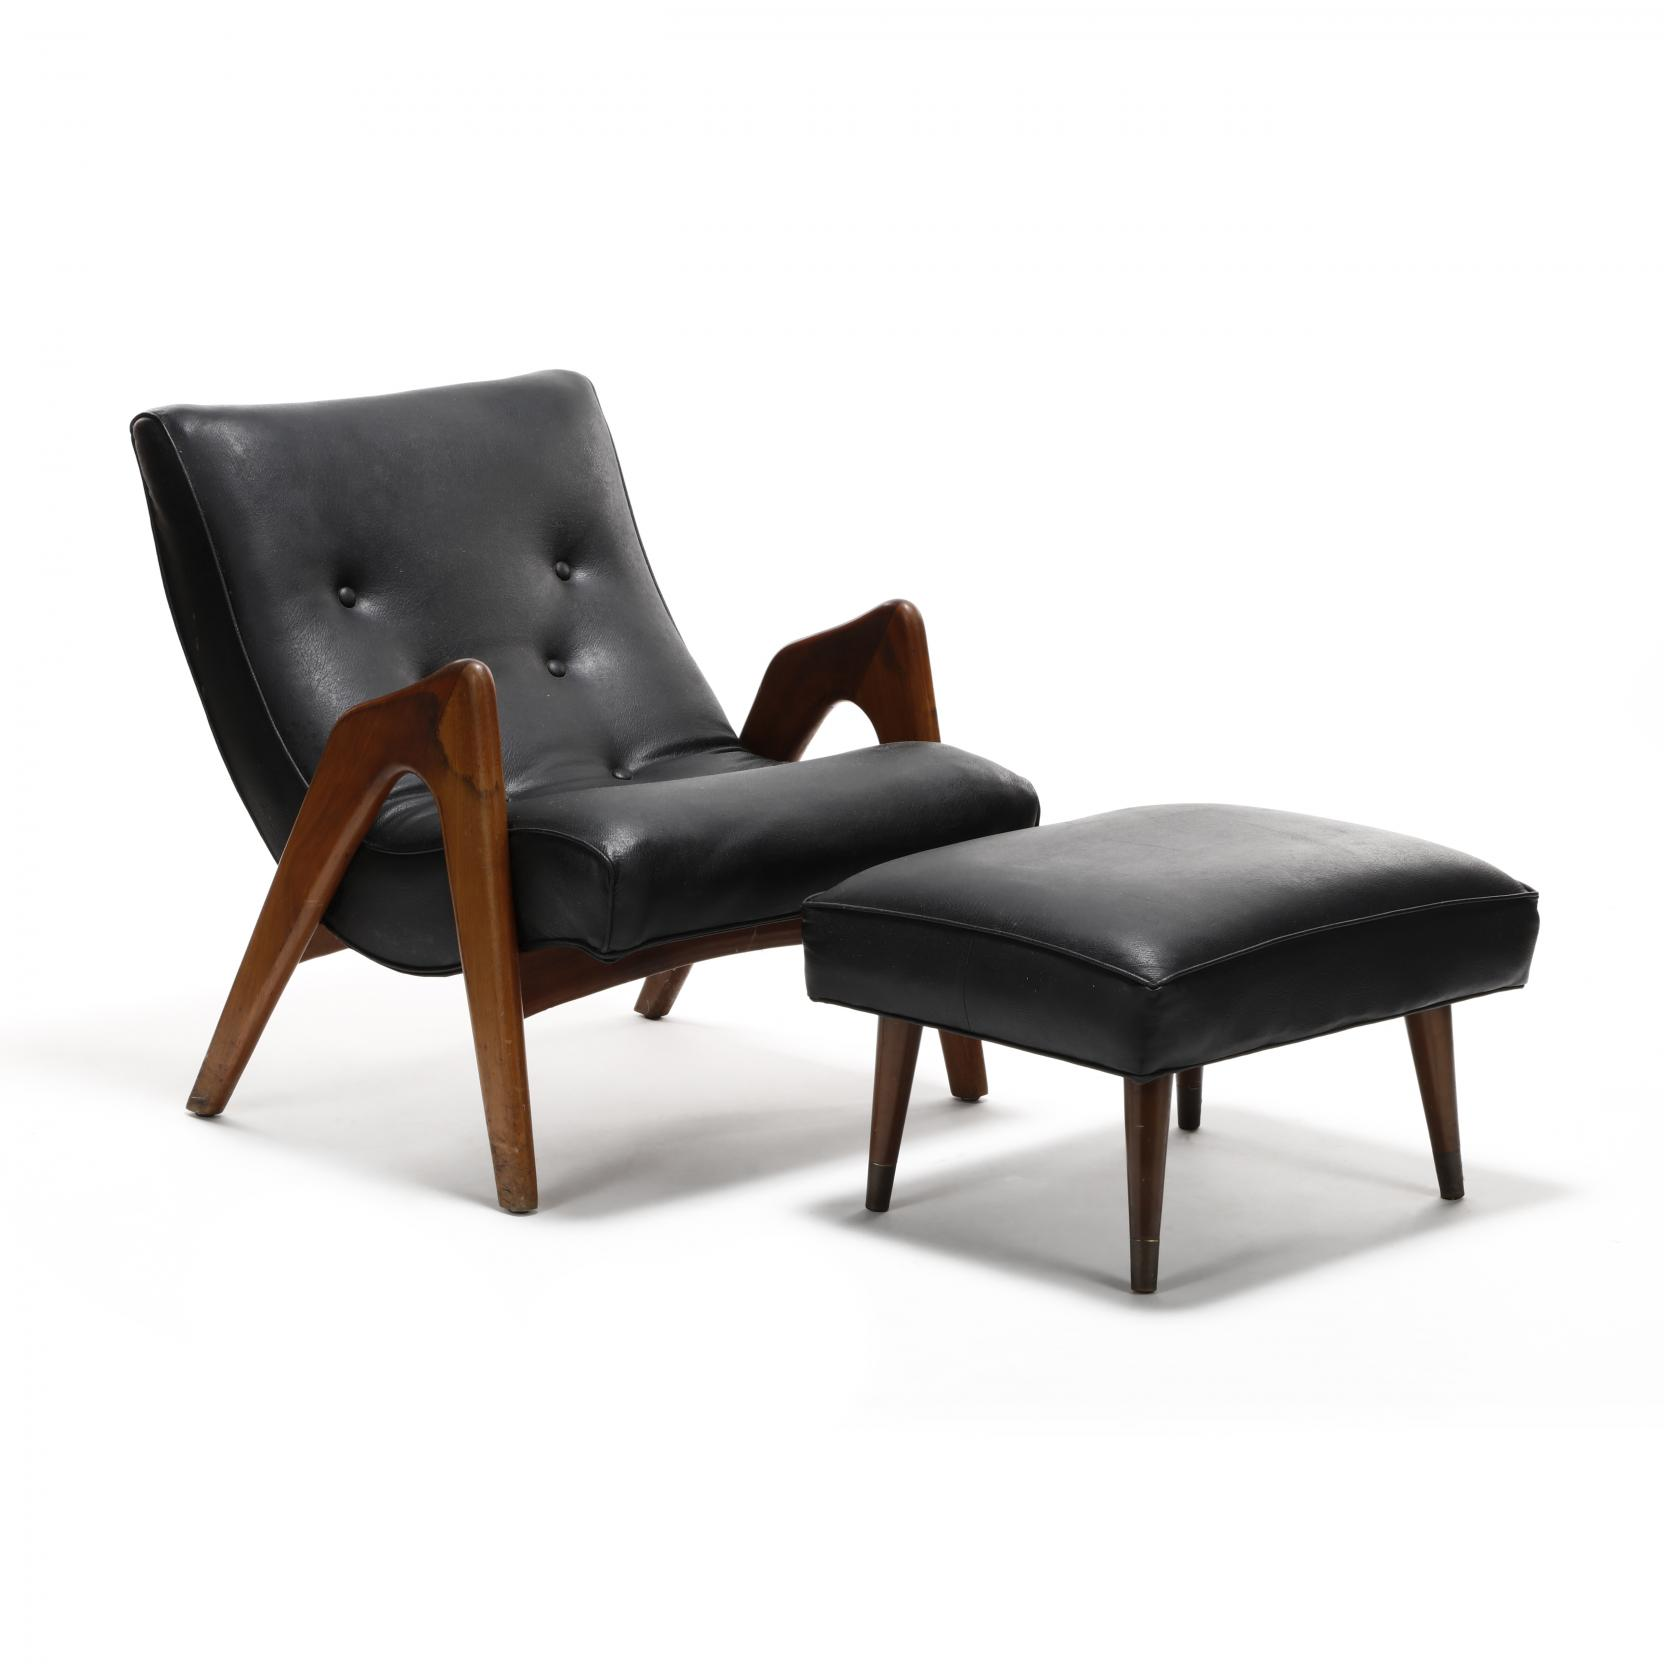 adrian-pearsall-lounge-chair-and-ottoman